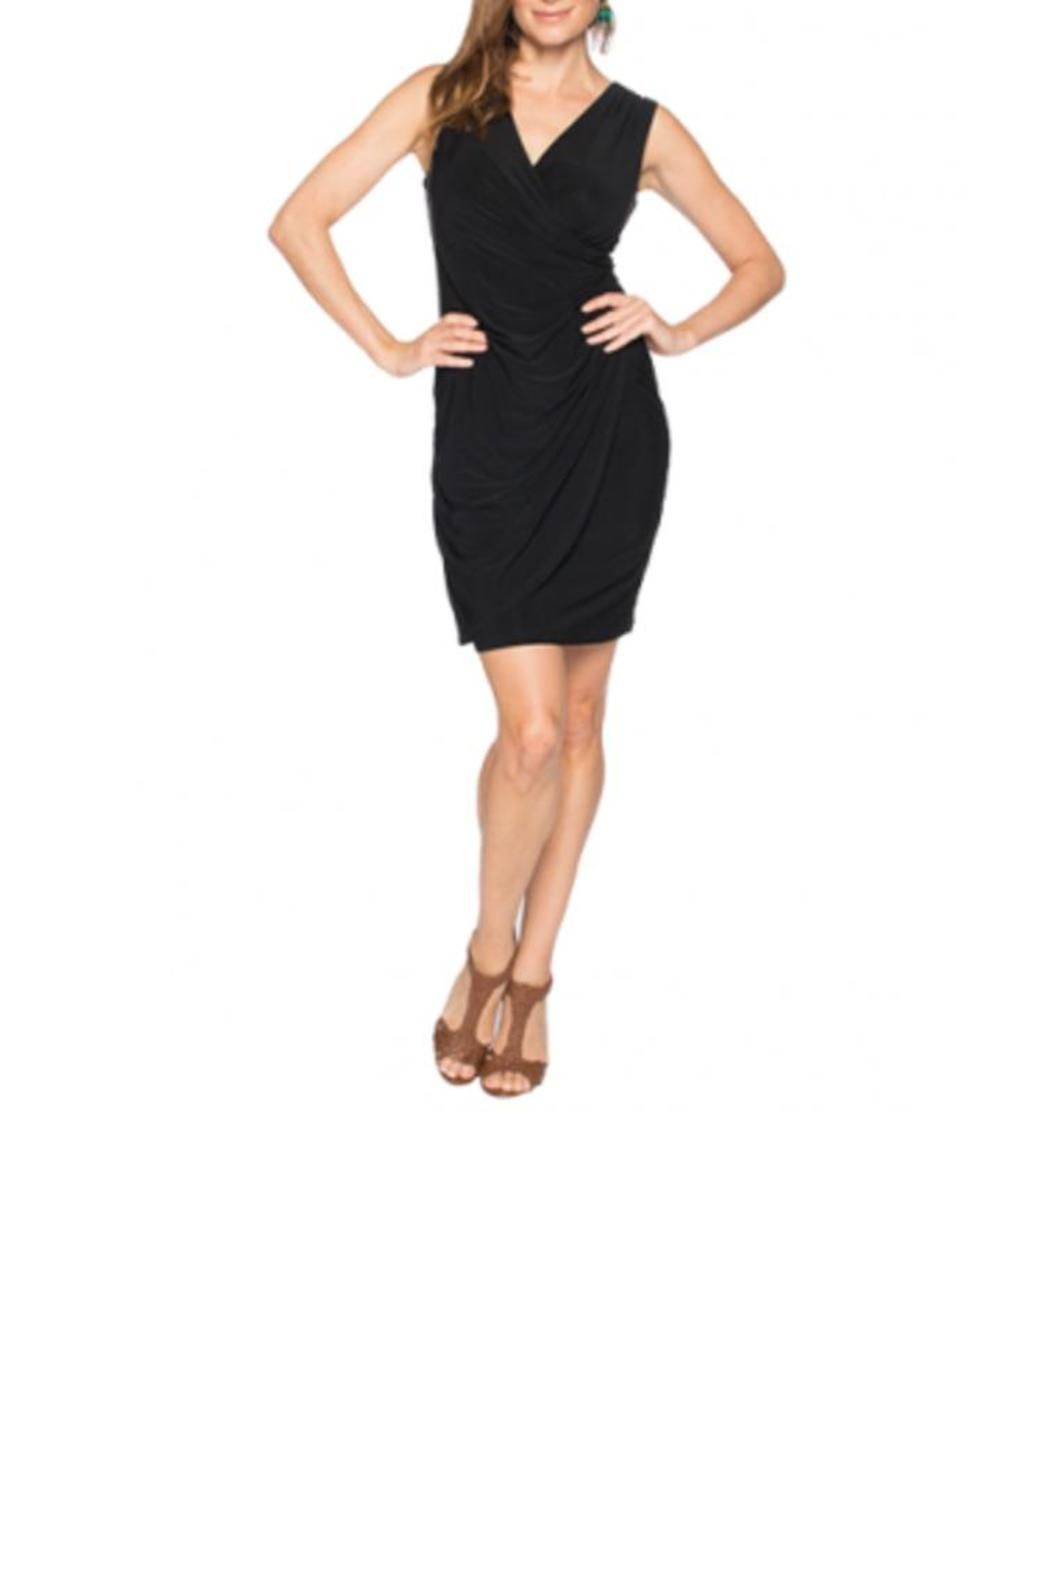 Look and feel fabulous in this sexy surplice tank dress. Effortless draping across the front of the body hides and flatters simultaneously to give an overall stylish and chic look. Wear with booties sandals or heels! Surplice Tank Dress by Tangerine. Clothing - Dresses Florida